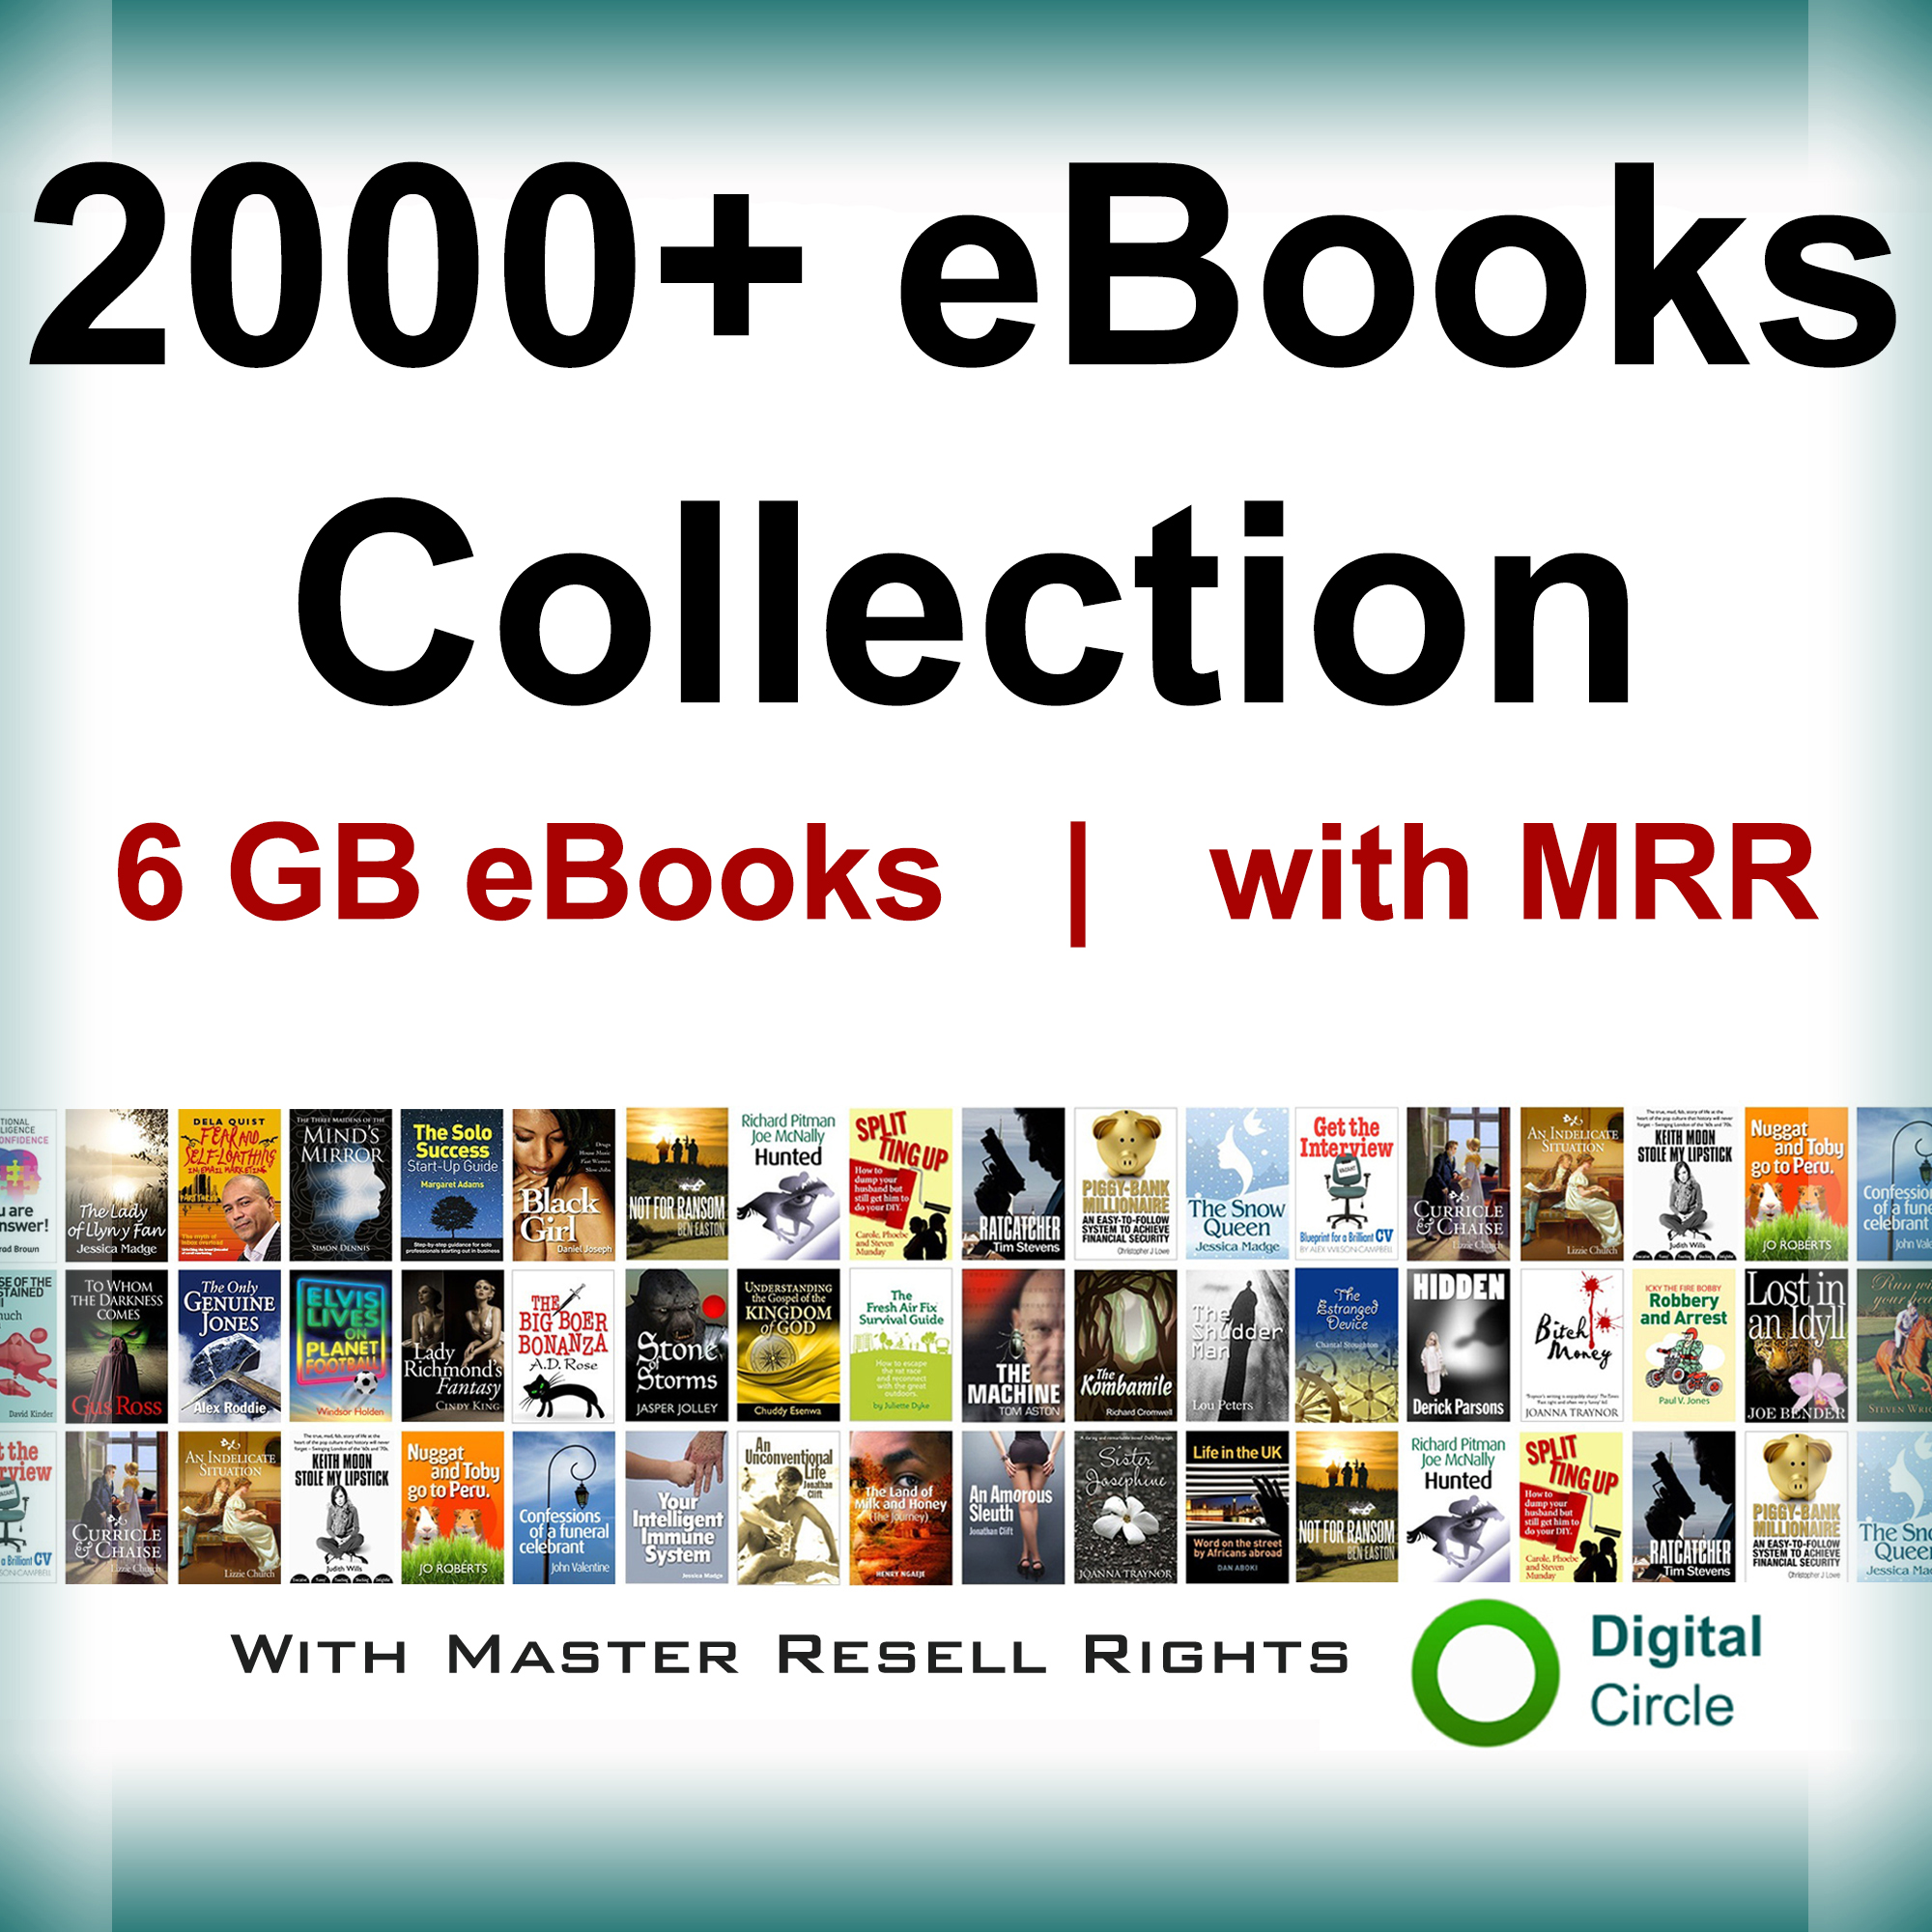 Give 2000 eBooks Collection with Master Resell Rights